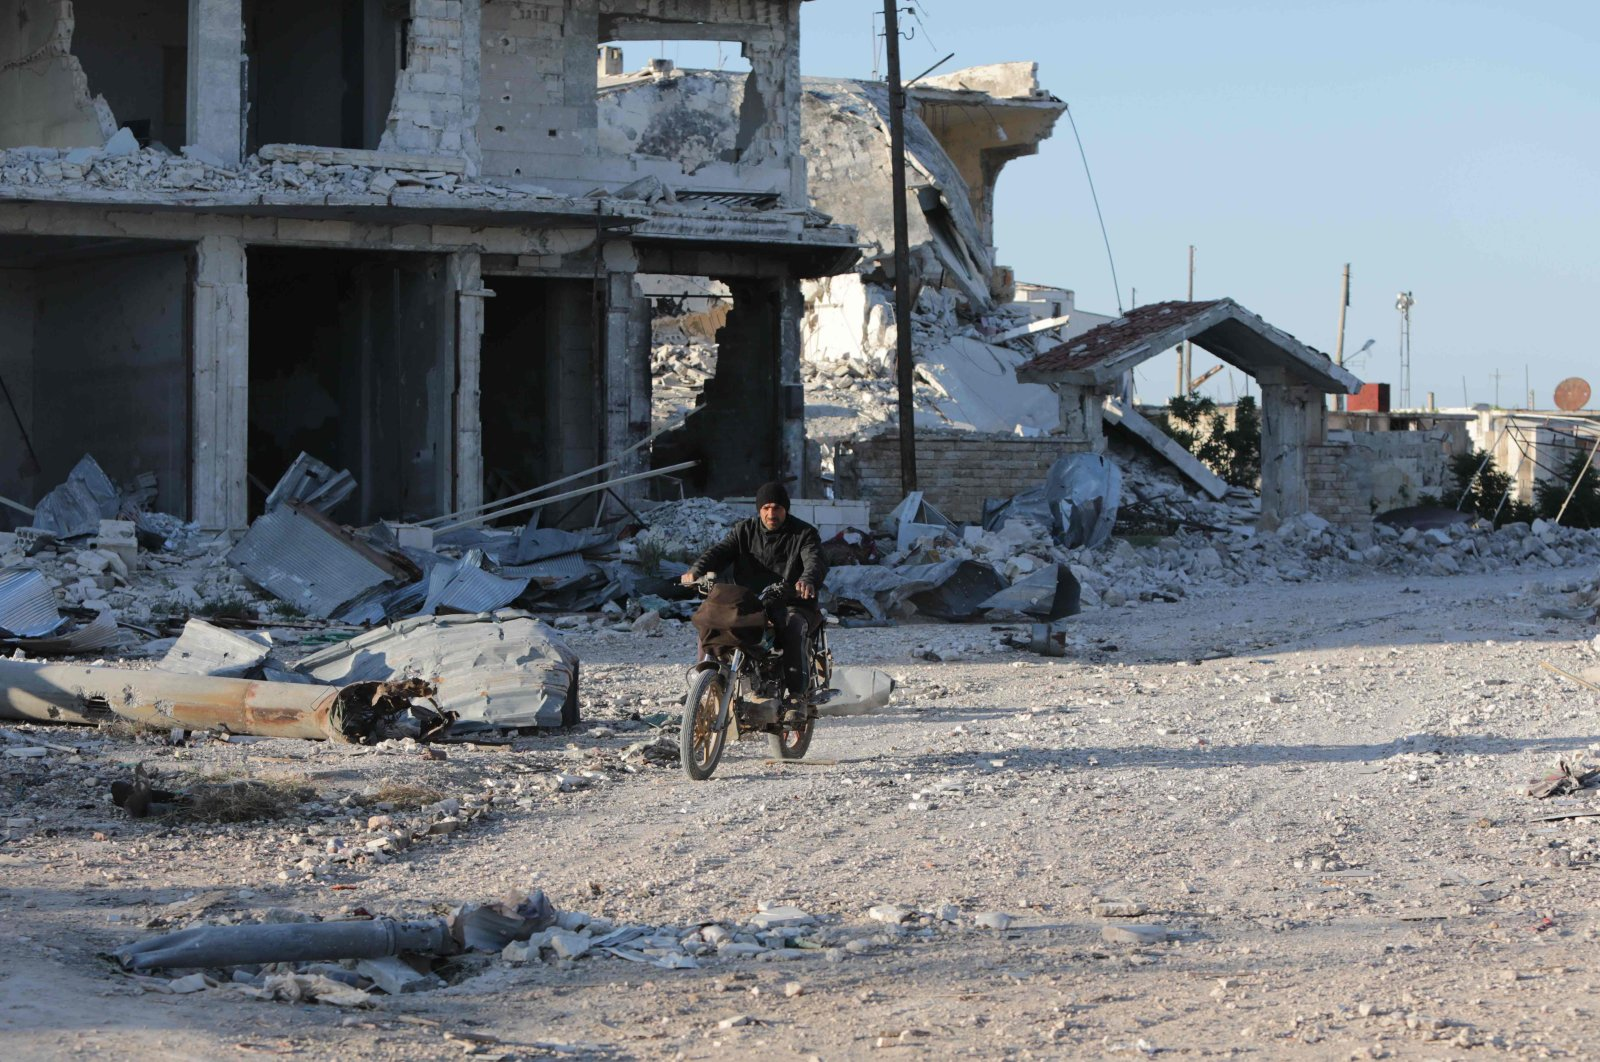 A Syrian man rides his motorcycle in al-Nayrab, a town ravaged by pro-regime forces' bombardment near the M4 strategic highway, in Syria's northwestern Idlib province, May 6, 2020. (AFP)